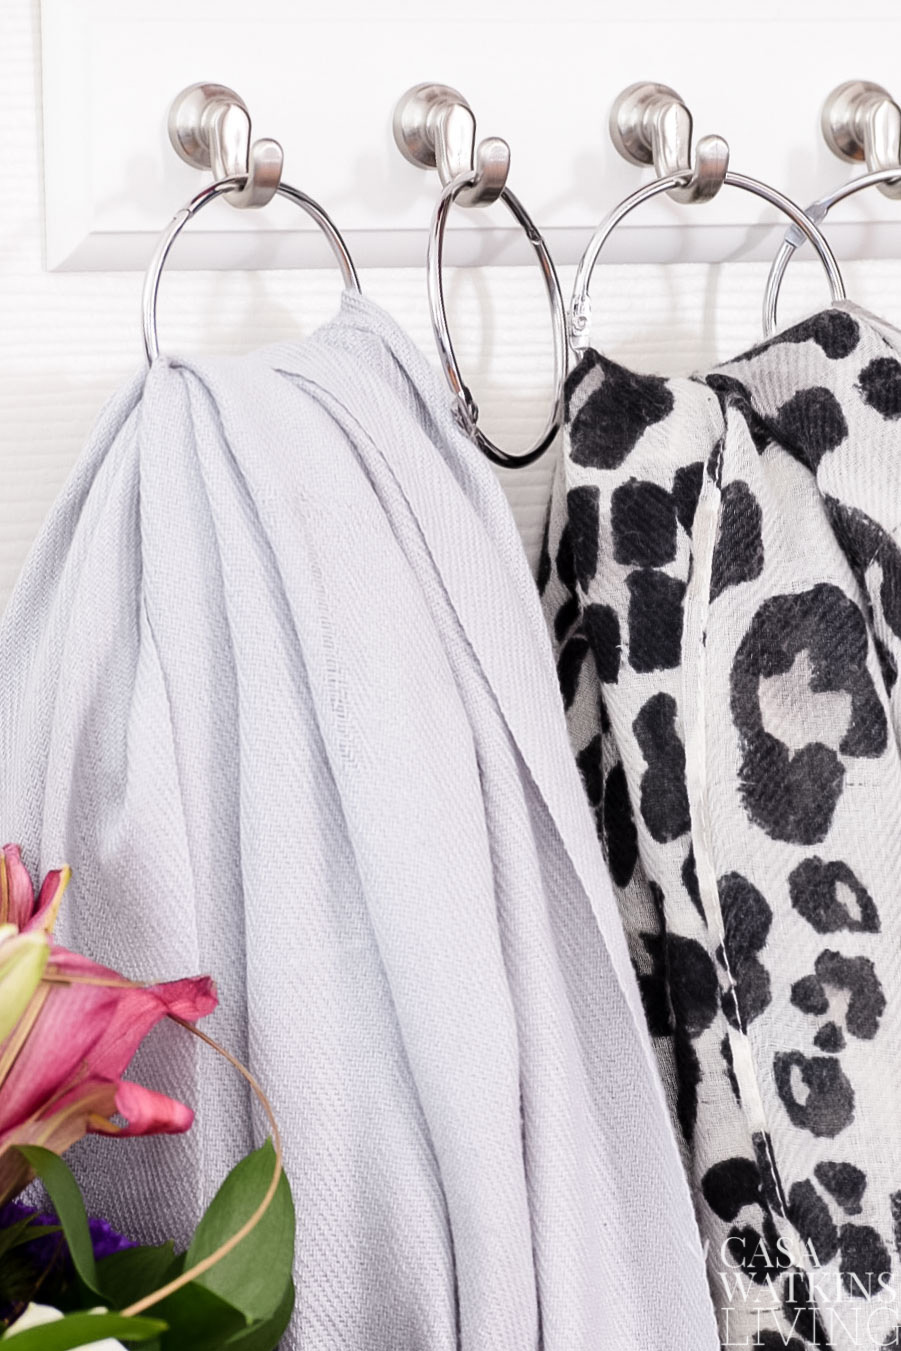 Use shower curtain rings on a hook for scarf organization in a coat closet